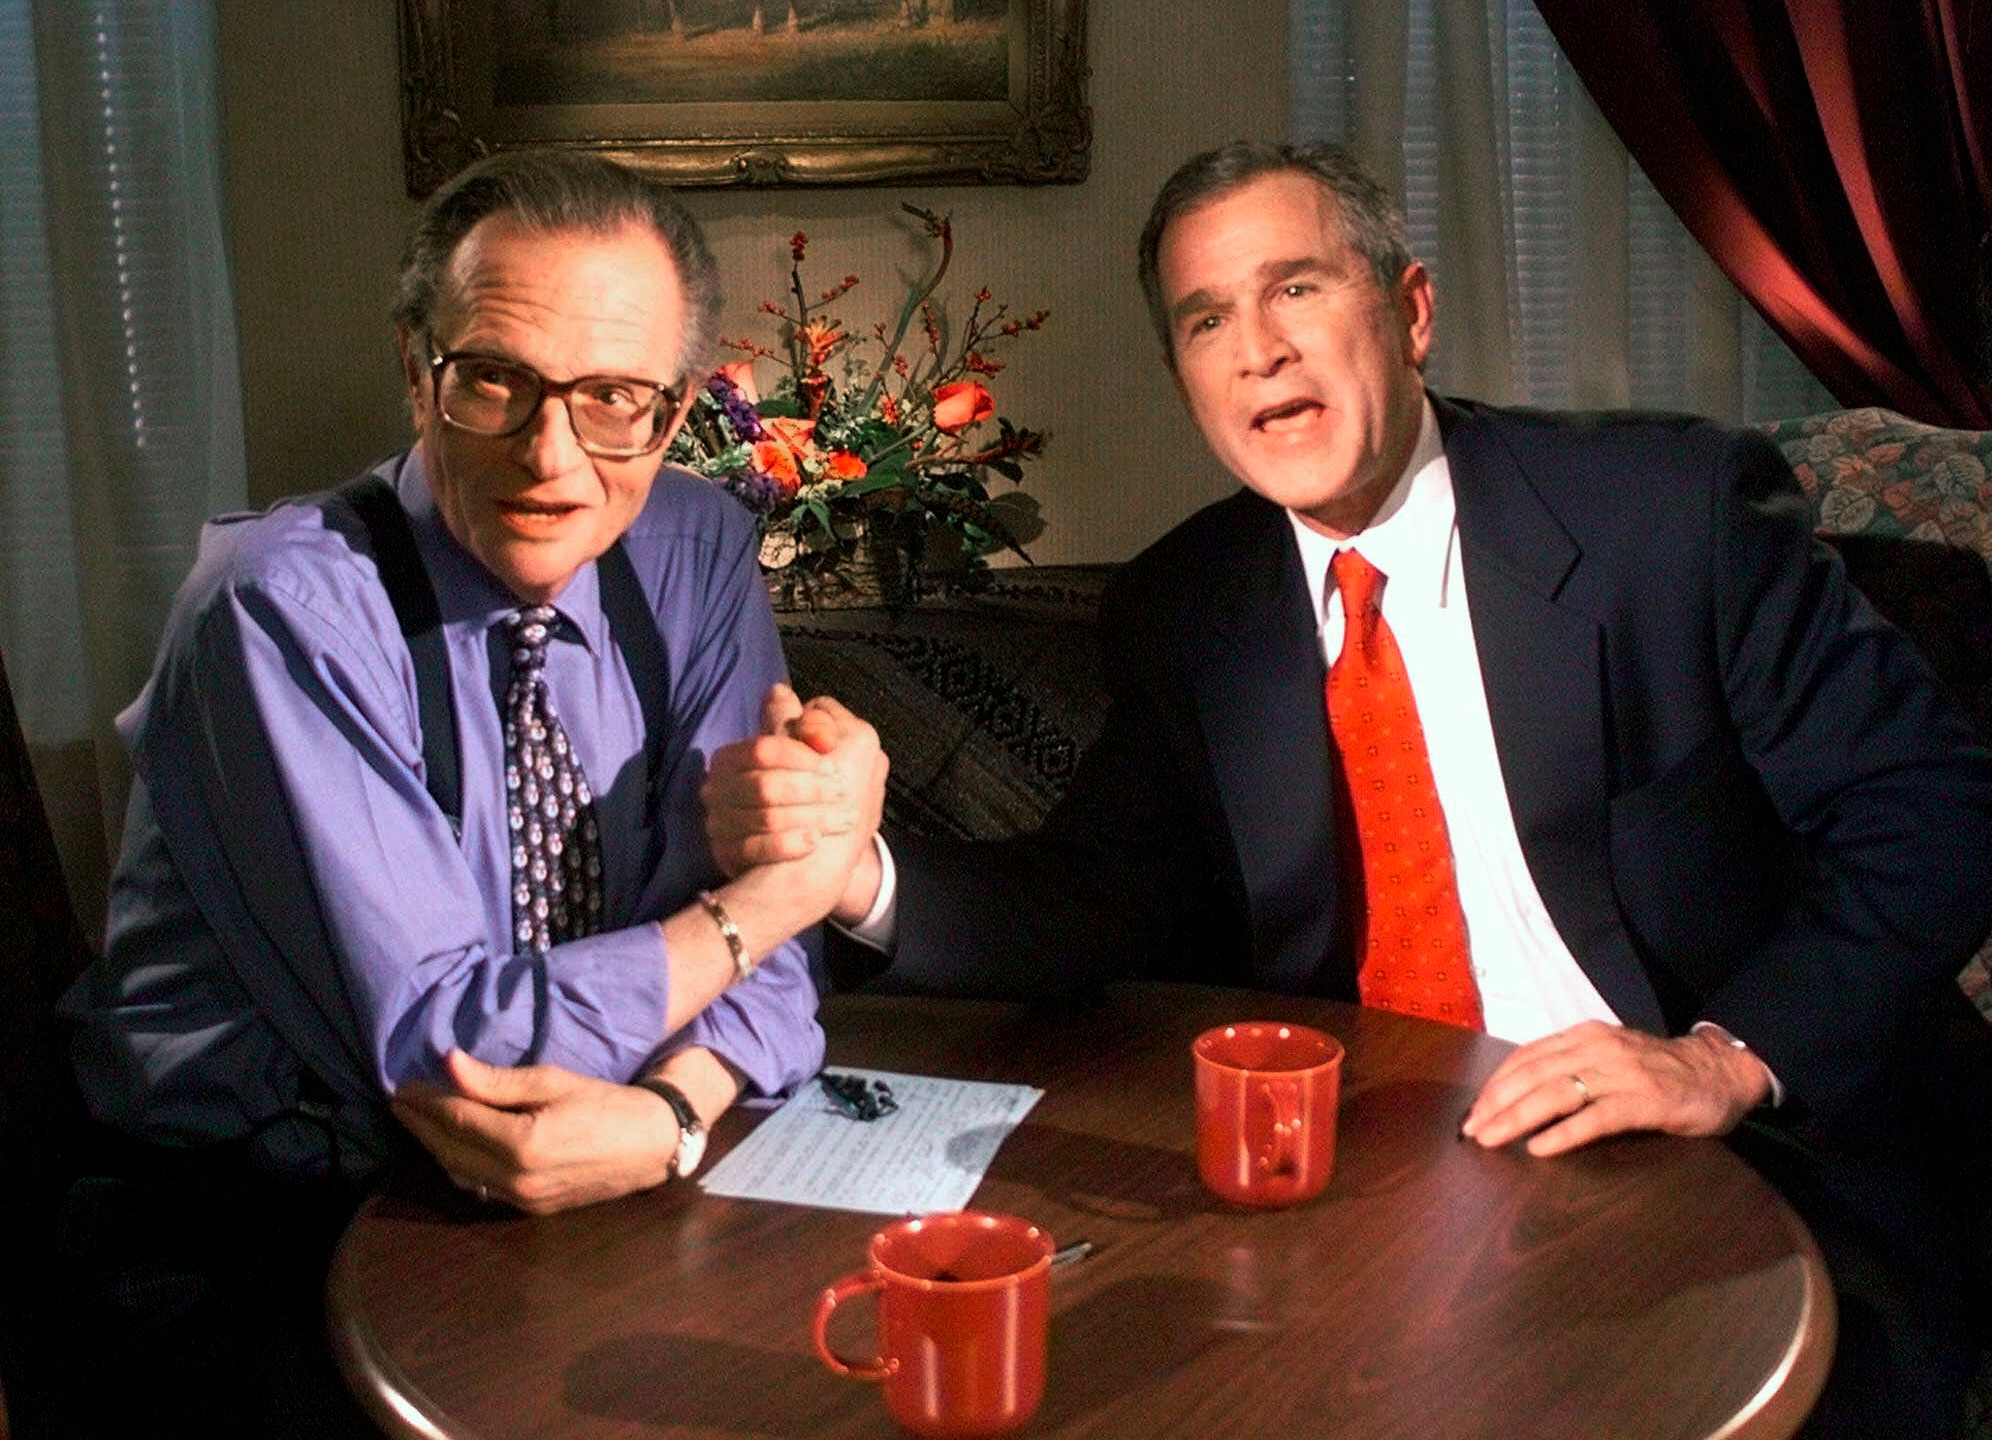 Larry King, George W. Bush